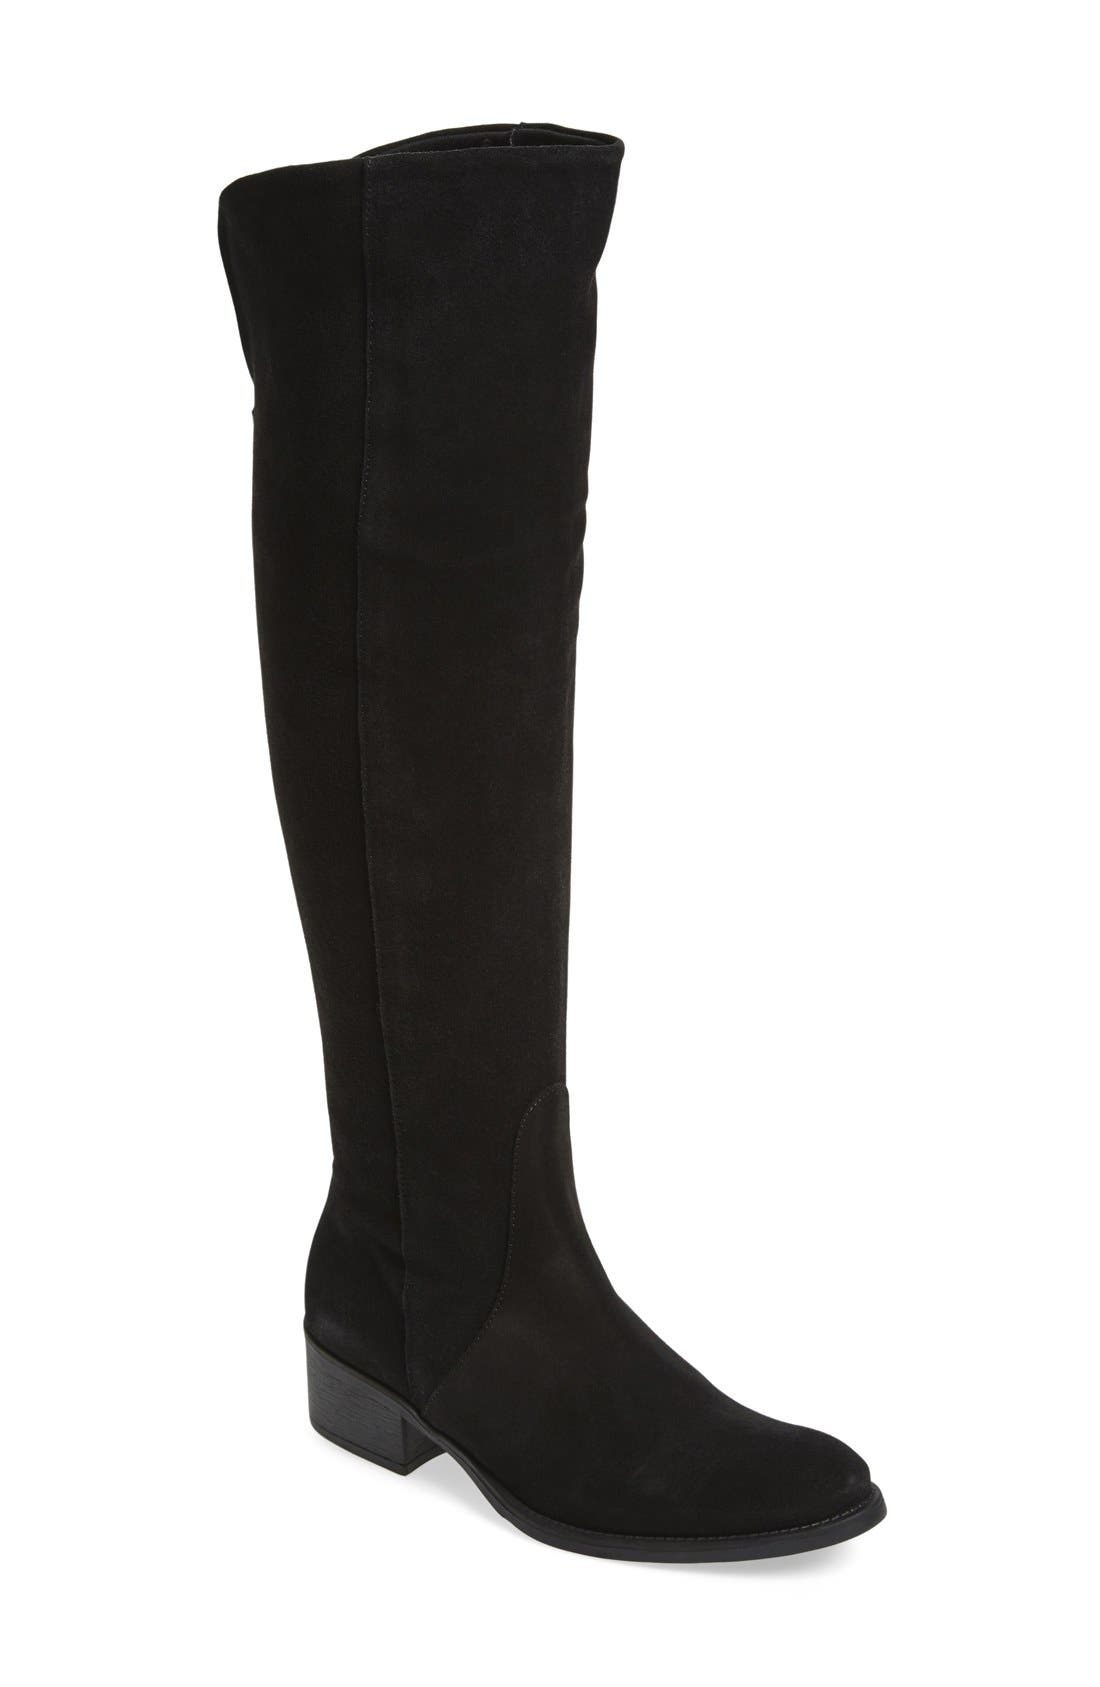 Alternate Image 1 Selected - Toni Pons 'Tallin' Over-The-Knee Riding Boot (Women)